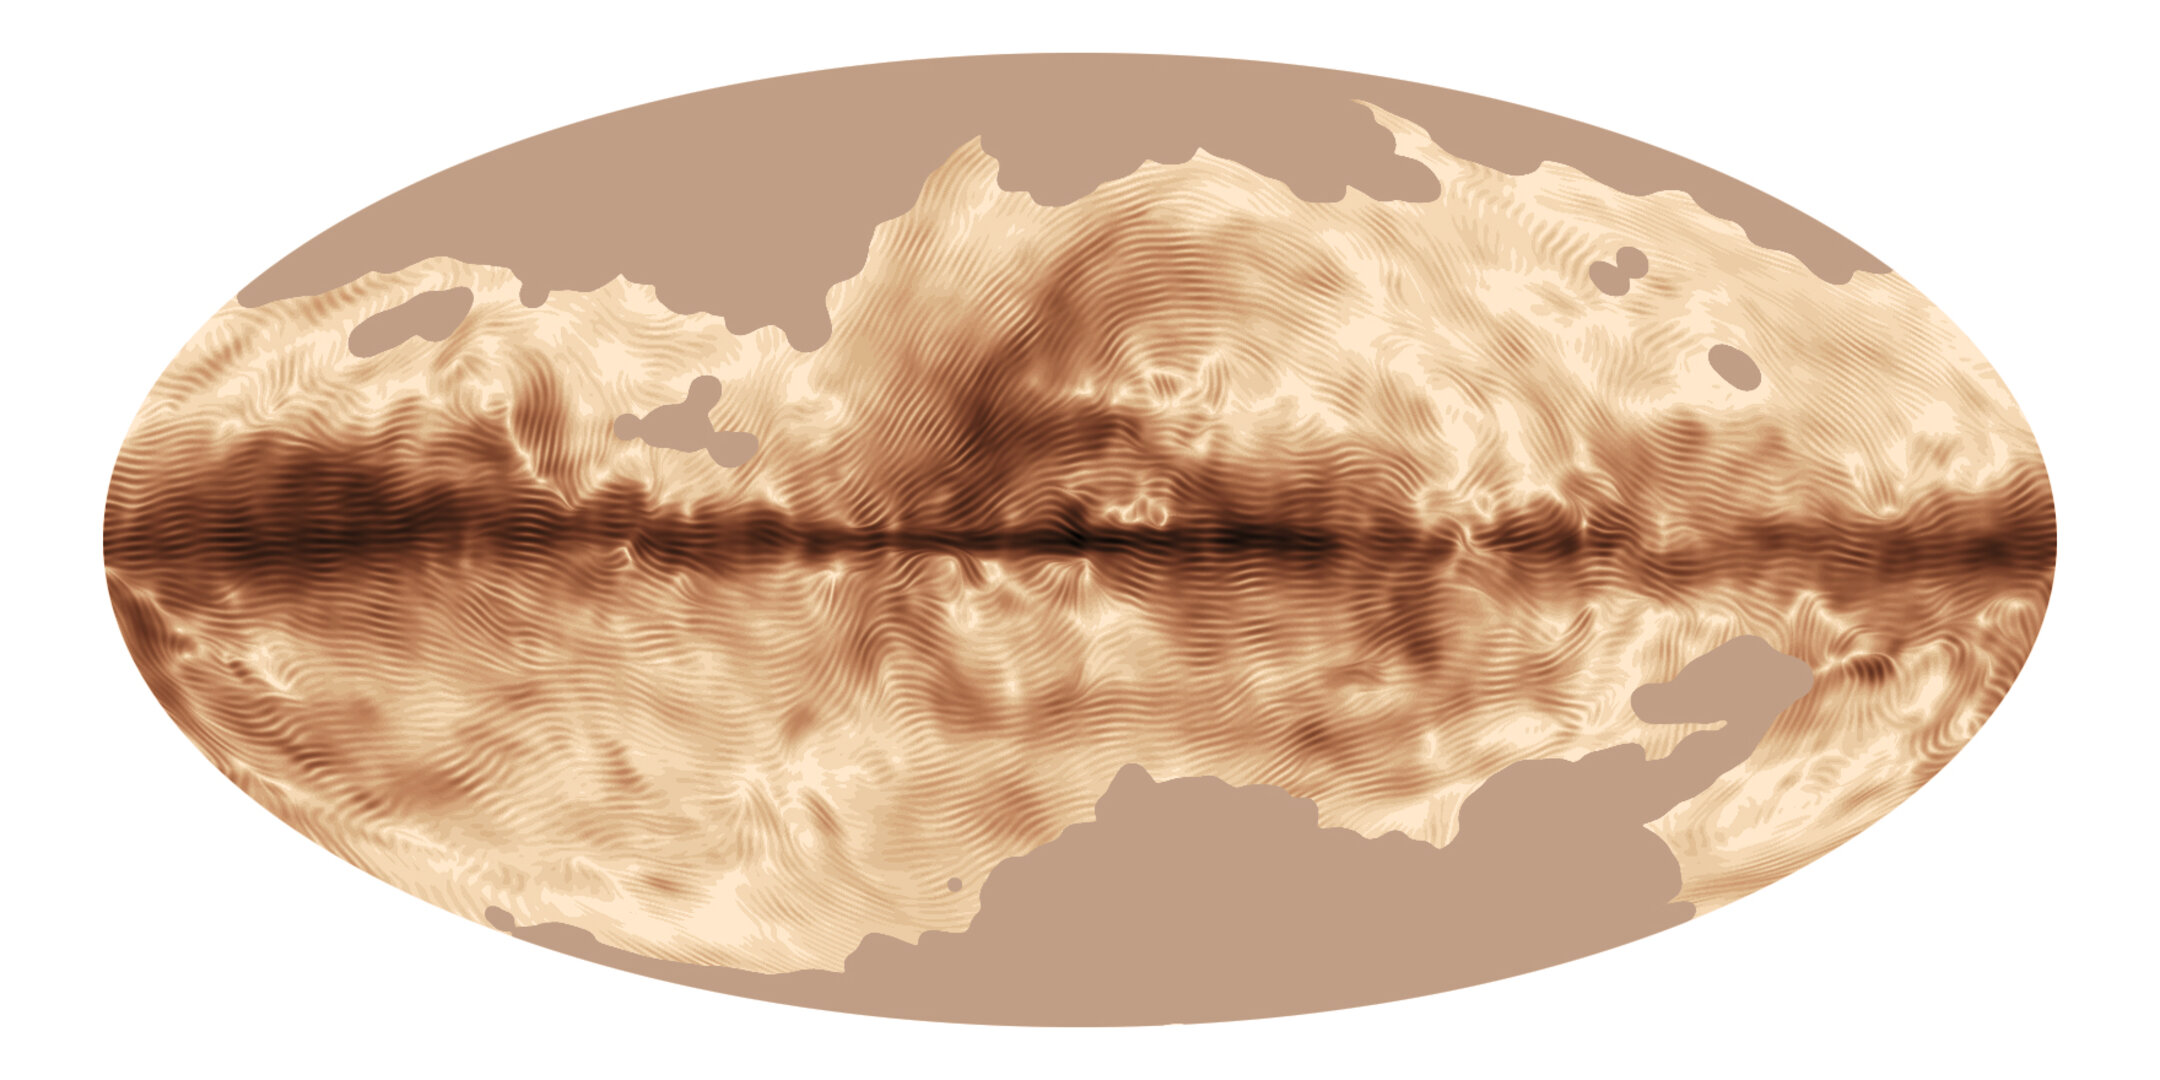 Milky Way's magnetic fingerprint